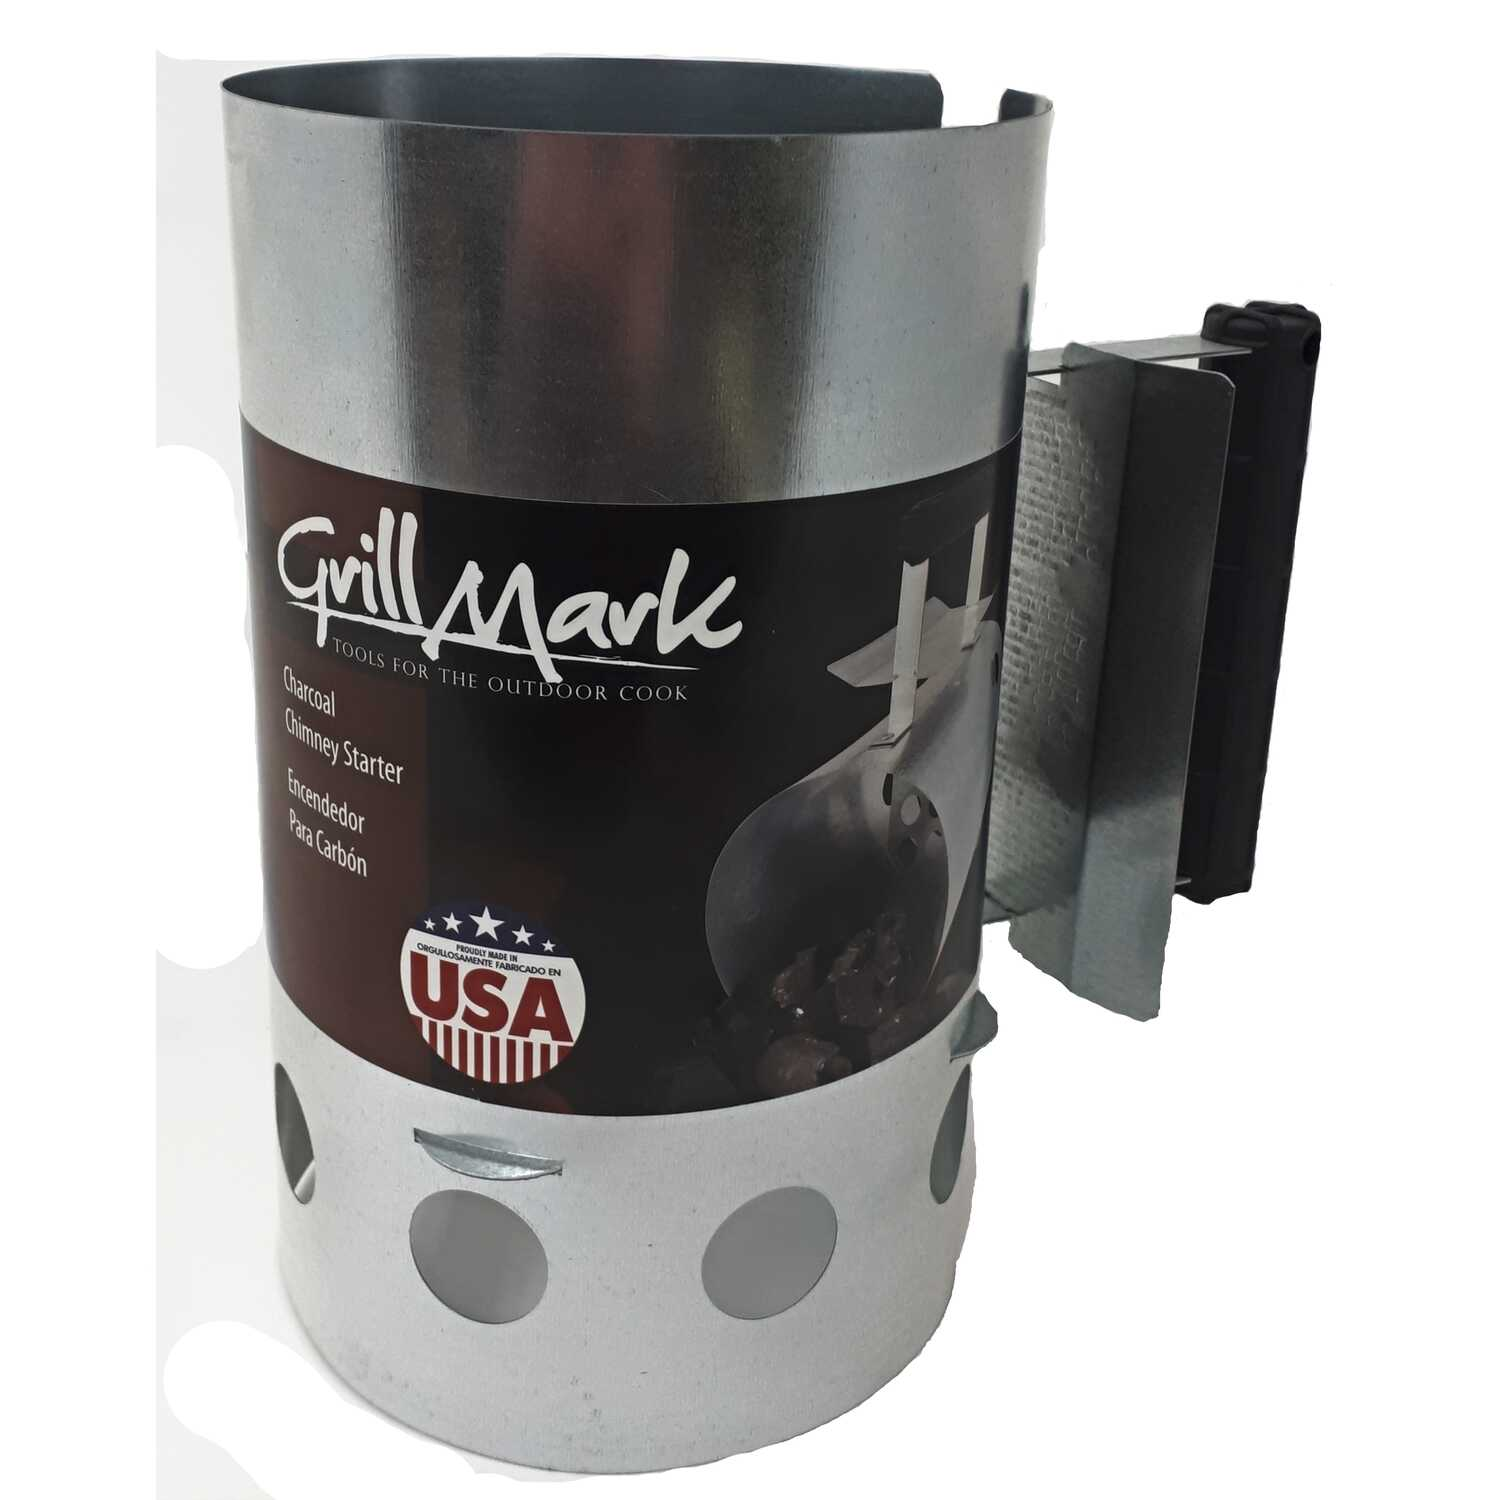 Grill Mark  Charcoal Chimney Starter  64 oz.